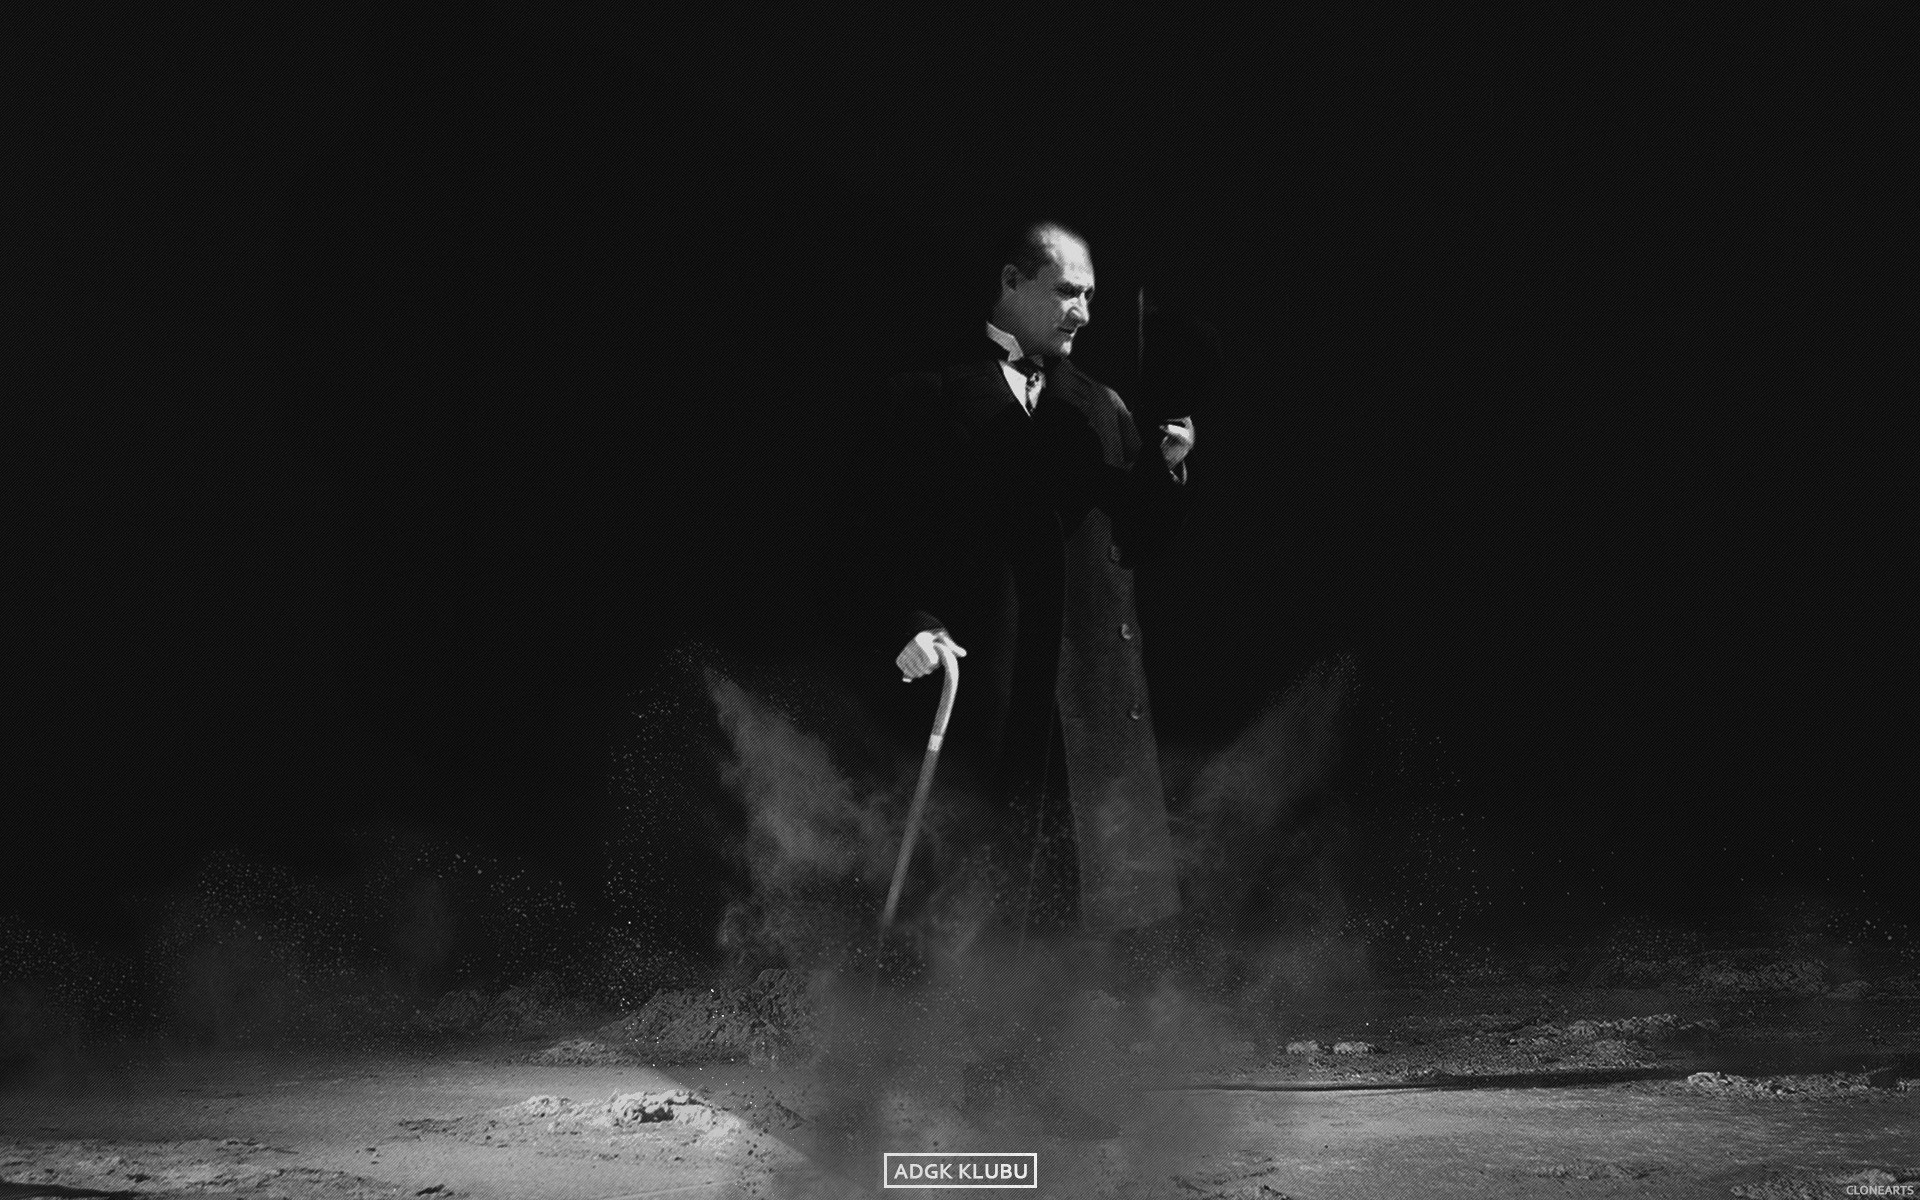 Best Quotes Hd Wallpapers For Mobile Ataturk Wallpapers 183 ①